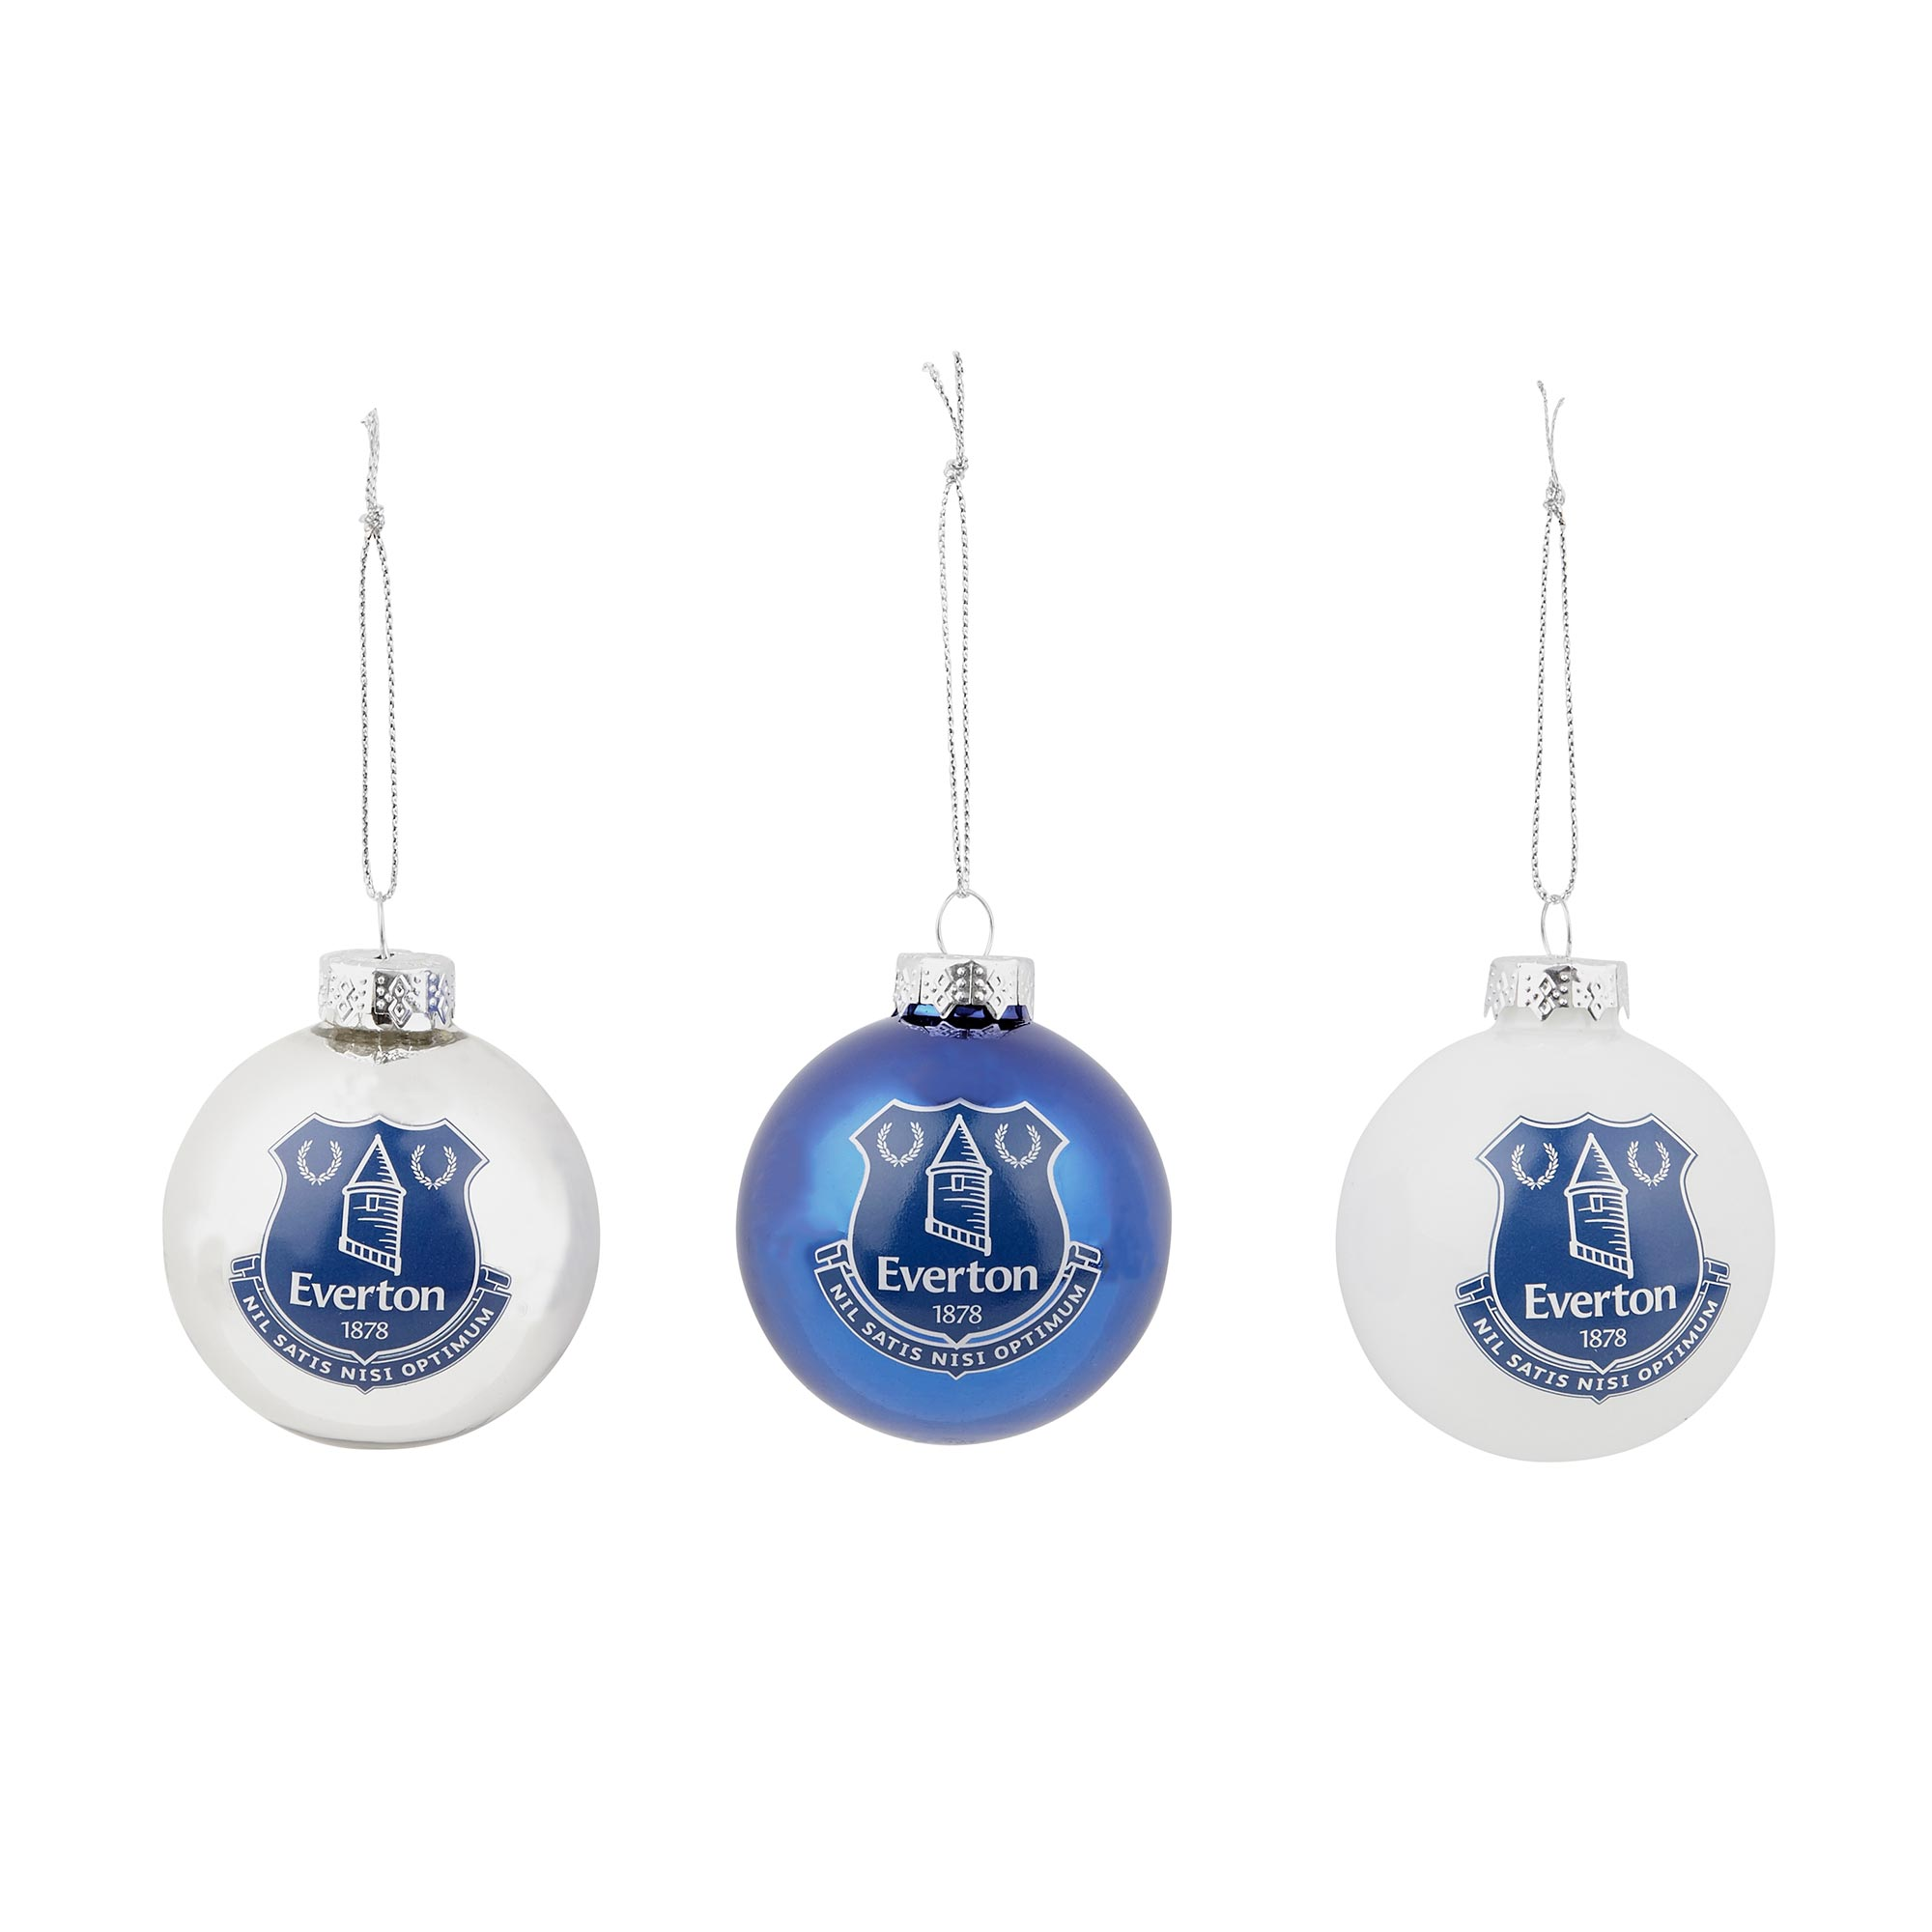 Image of Everton Baubles 60mm - 3 Pack